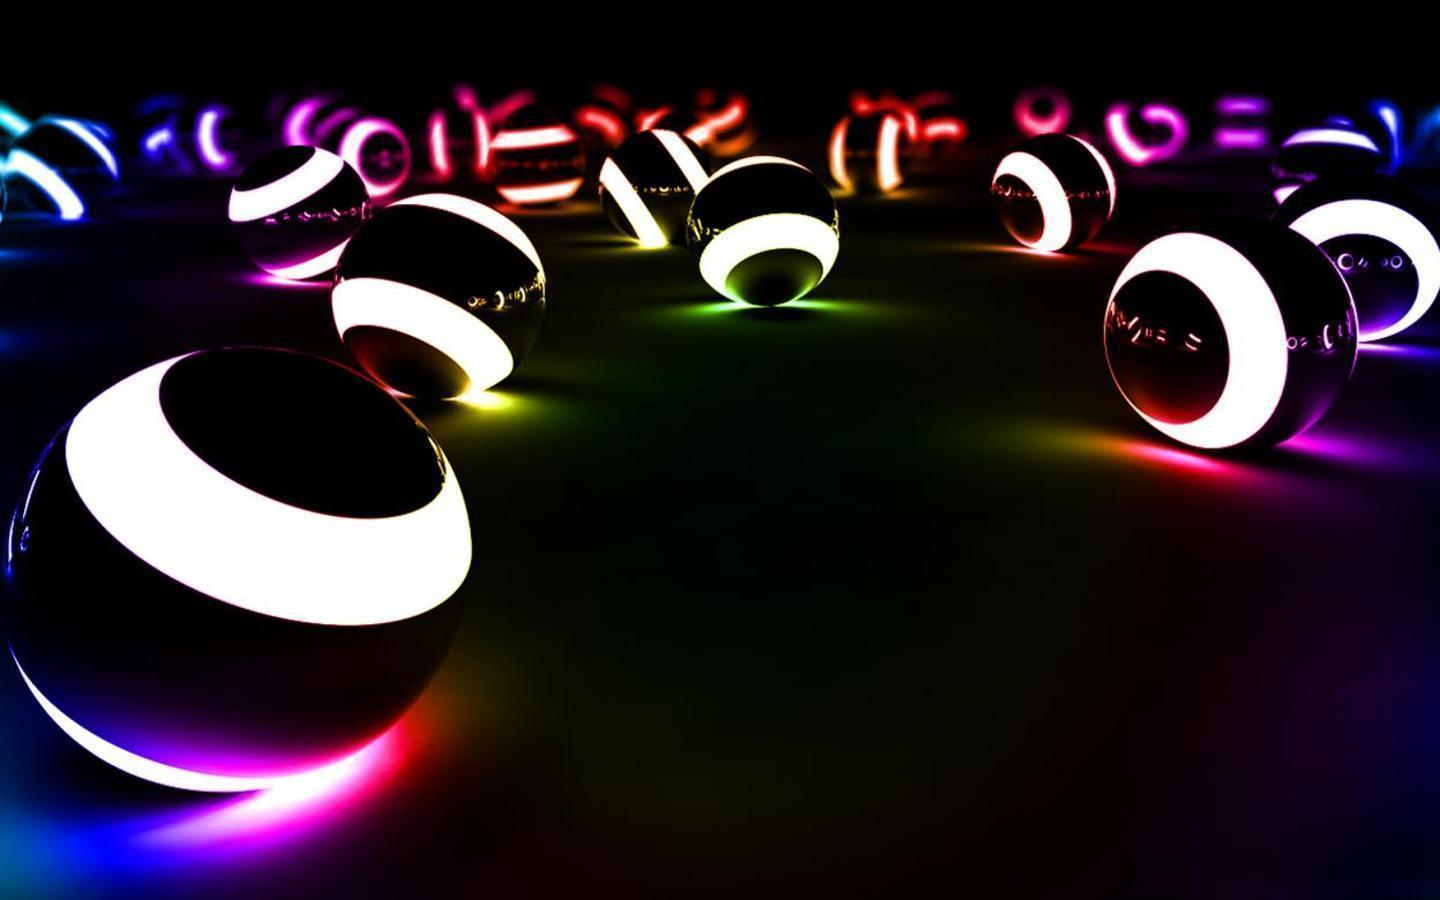 hd neon wallpapers - photo #42